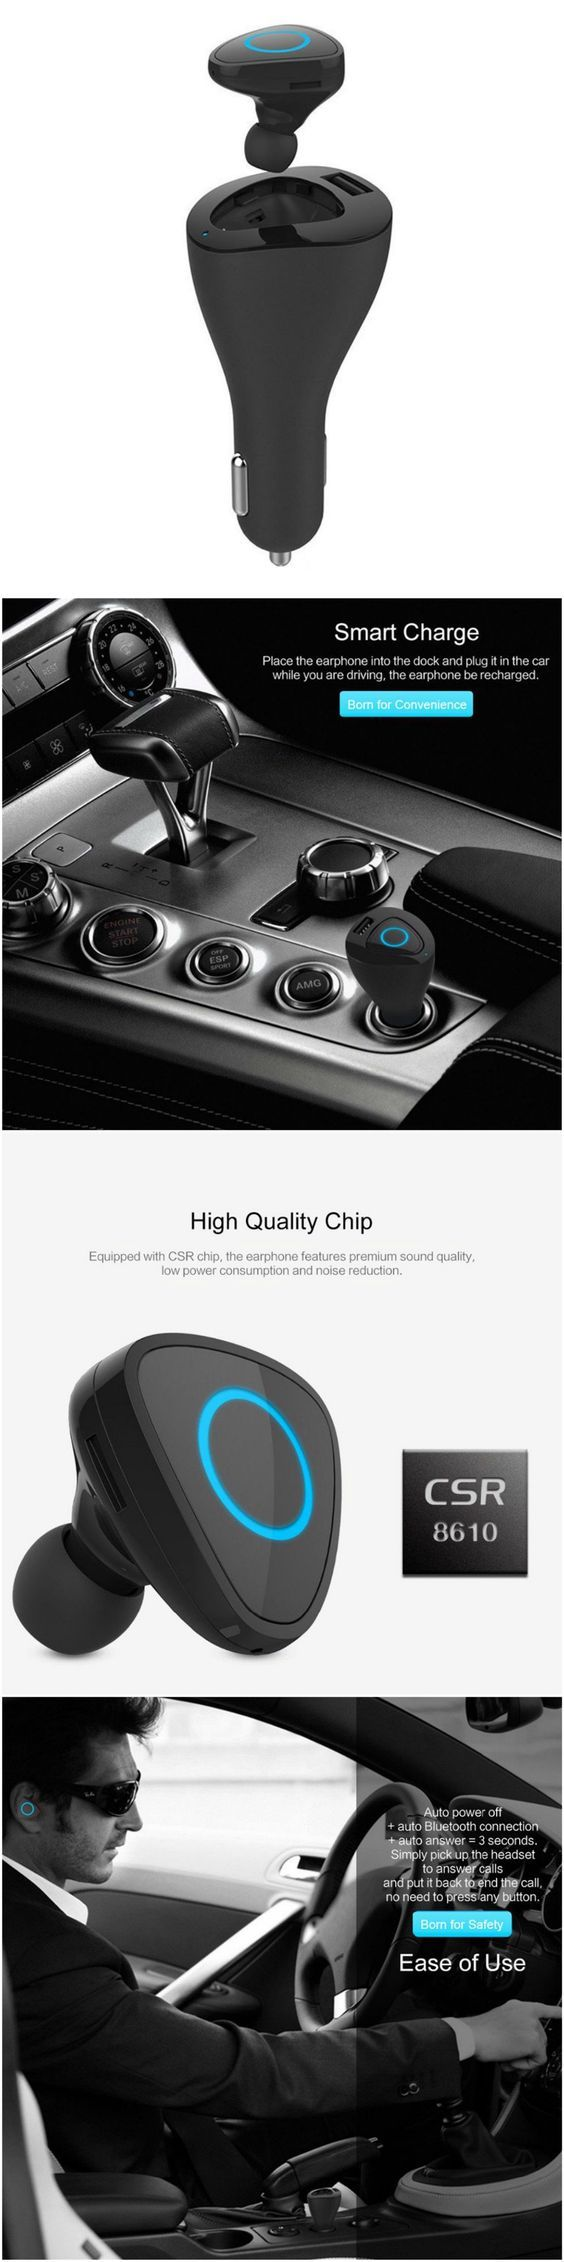 Function: For Mobile Phone,Sport,For Routine Office Work,Common Headphone,Microphone,Supports music,for Video Game,Noise Cancelling,Portable,Bluetooth Support APP: No Sensitivity: 95±3dB Line Length: